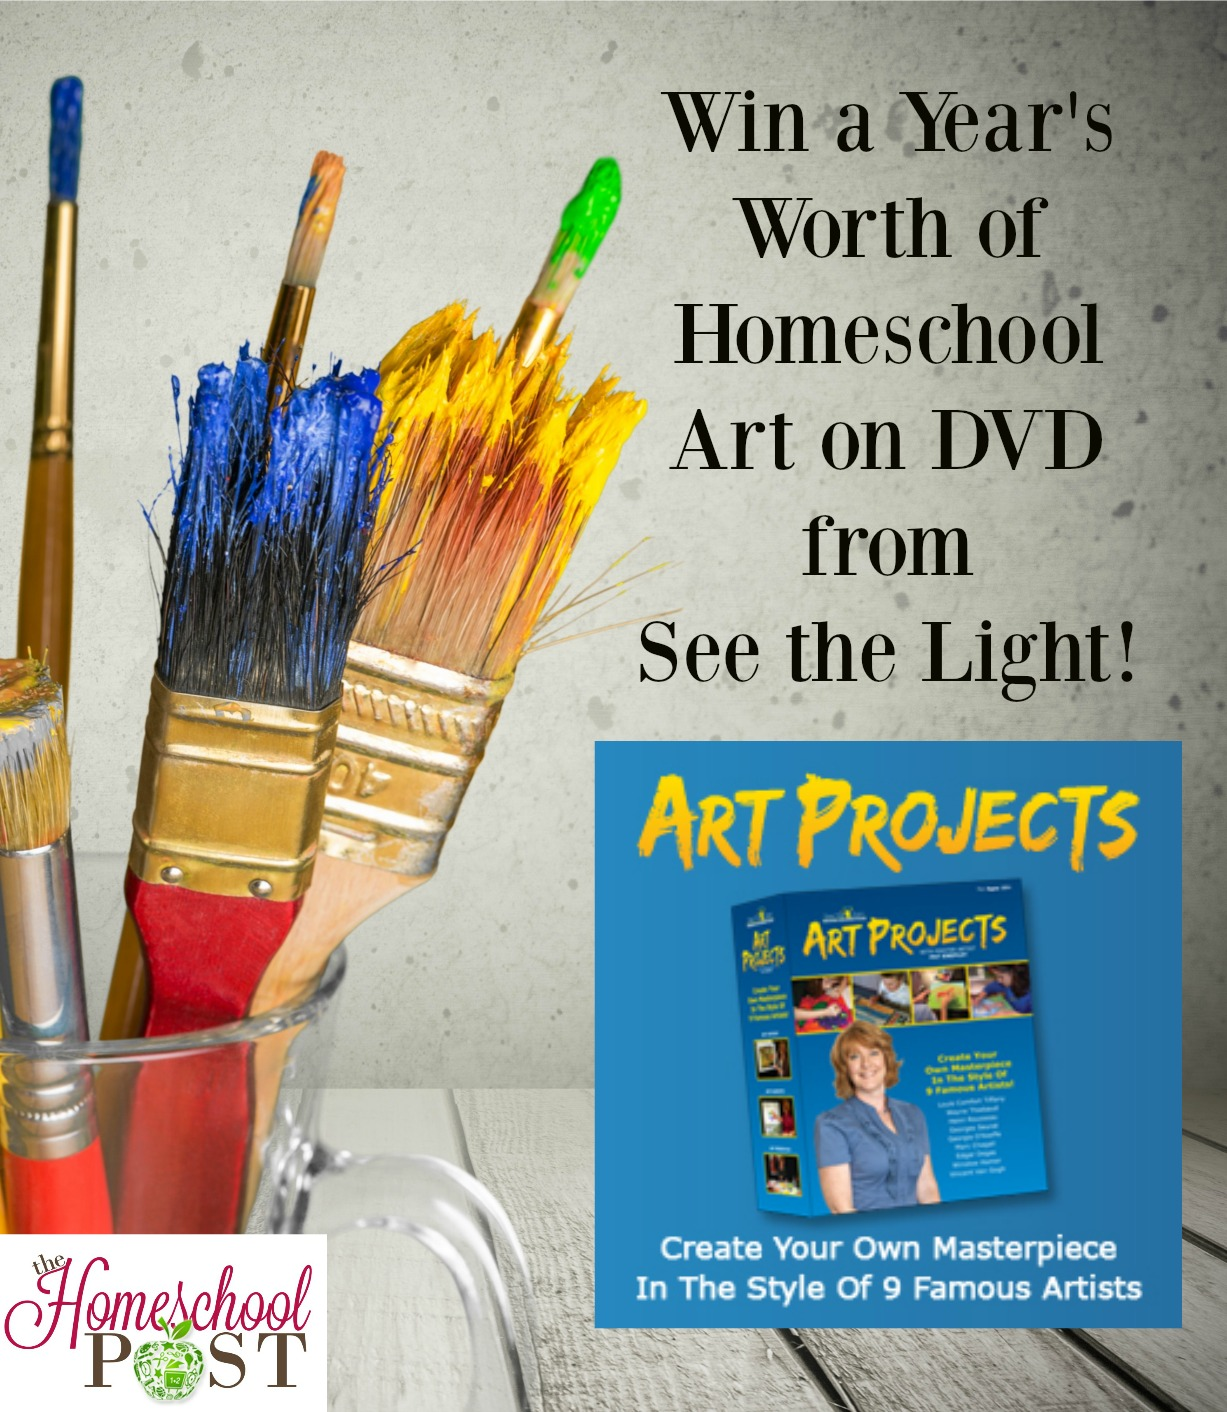 Enter for a chance to win the Art Projects DVD box set from See the Light. An entire year's worth of artist study and art lessons. hsbapost.com